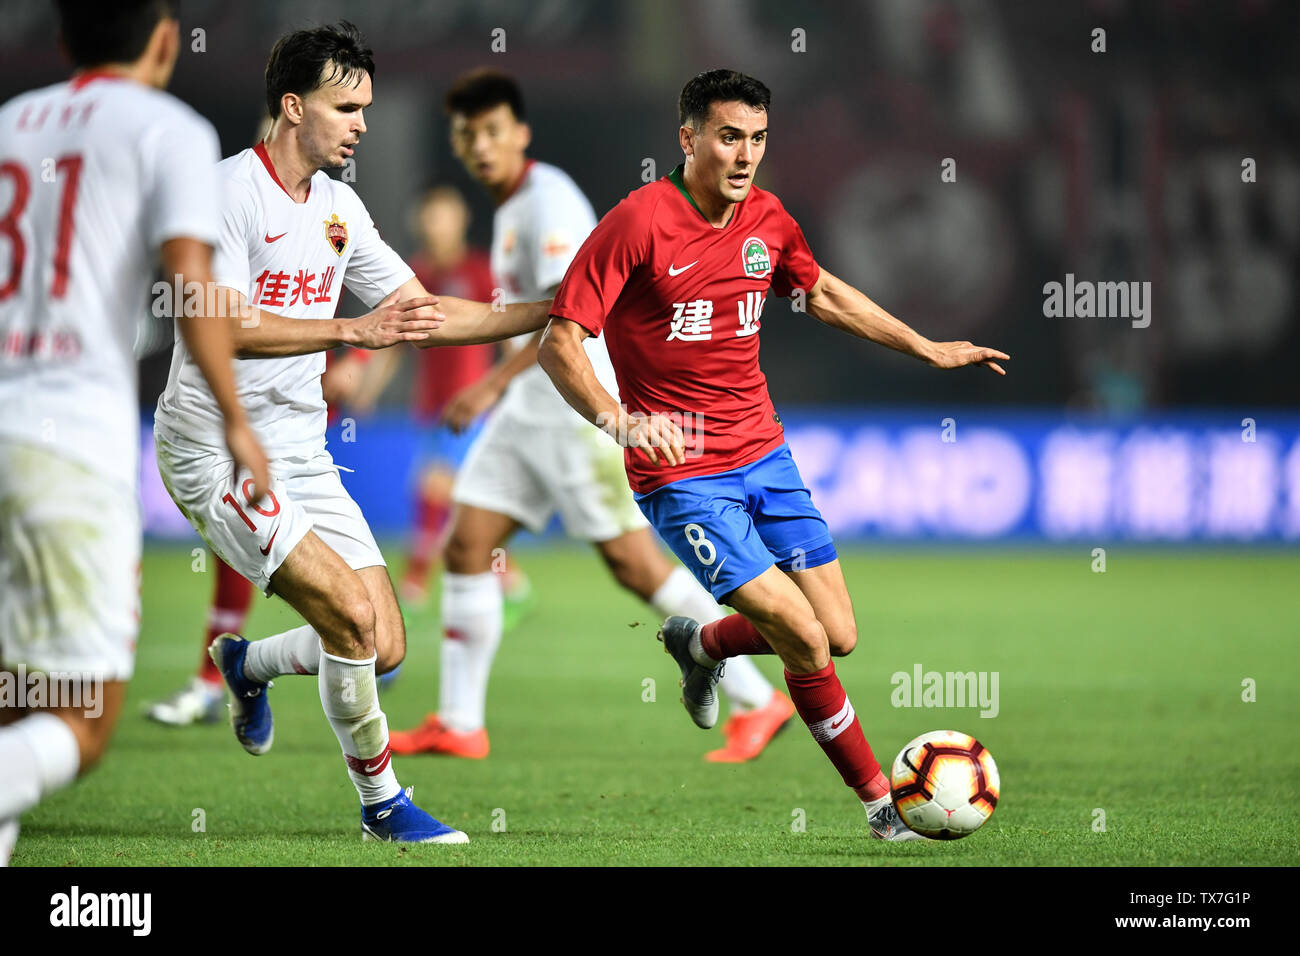 English-born Taiwanese football player Tim Chow, right, of Henan Jianye passes the ball against Norwegian football player Ole Selnaes of Shenzhen F.C. in their 14th round match during the 2019 Chinese Football Association Super League (CSL) in Zhengzhou city, central China's Henan province, 22 June 2019. Henan Jianye defeated Shenzhen F.C. 1-0. Stock Photo